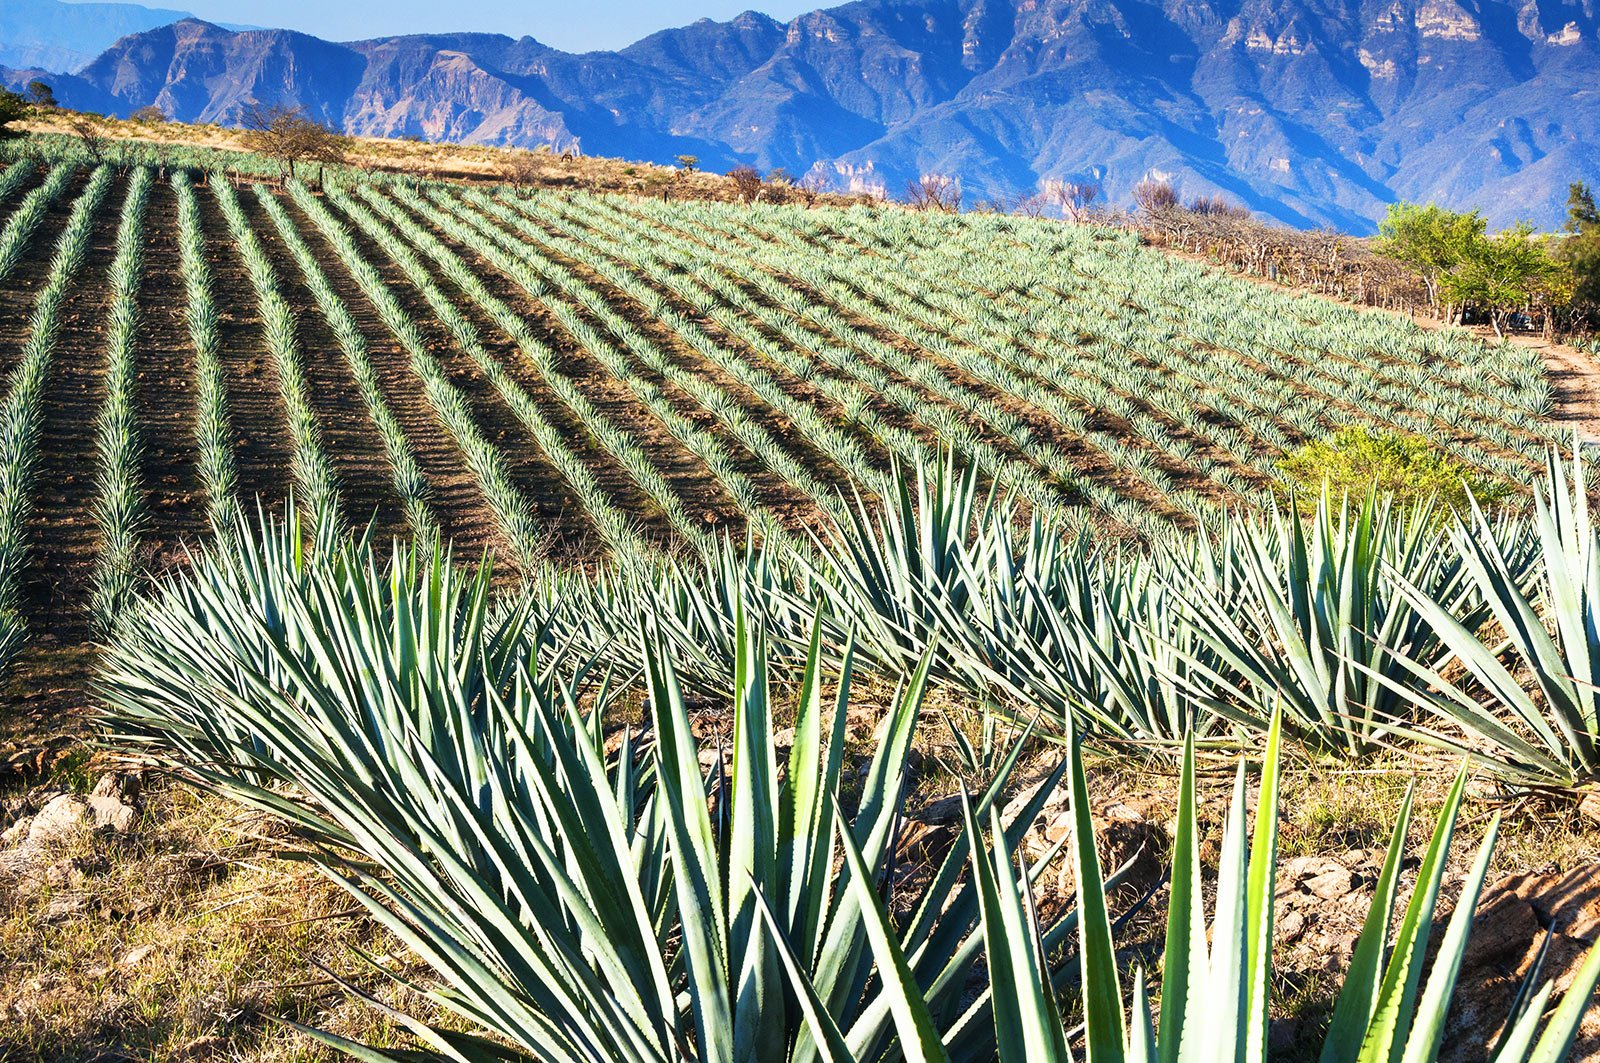 How to find out how they produce tequila in Guadalajara